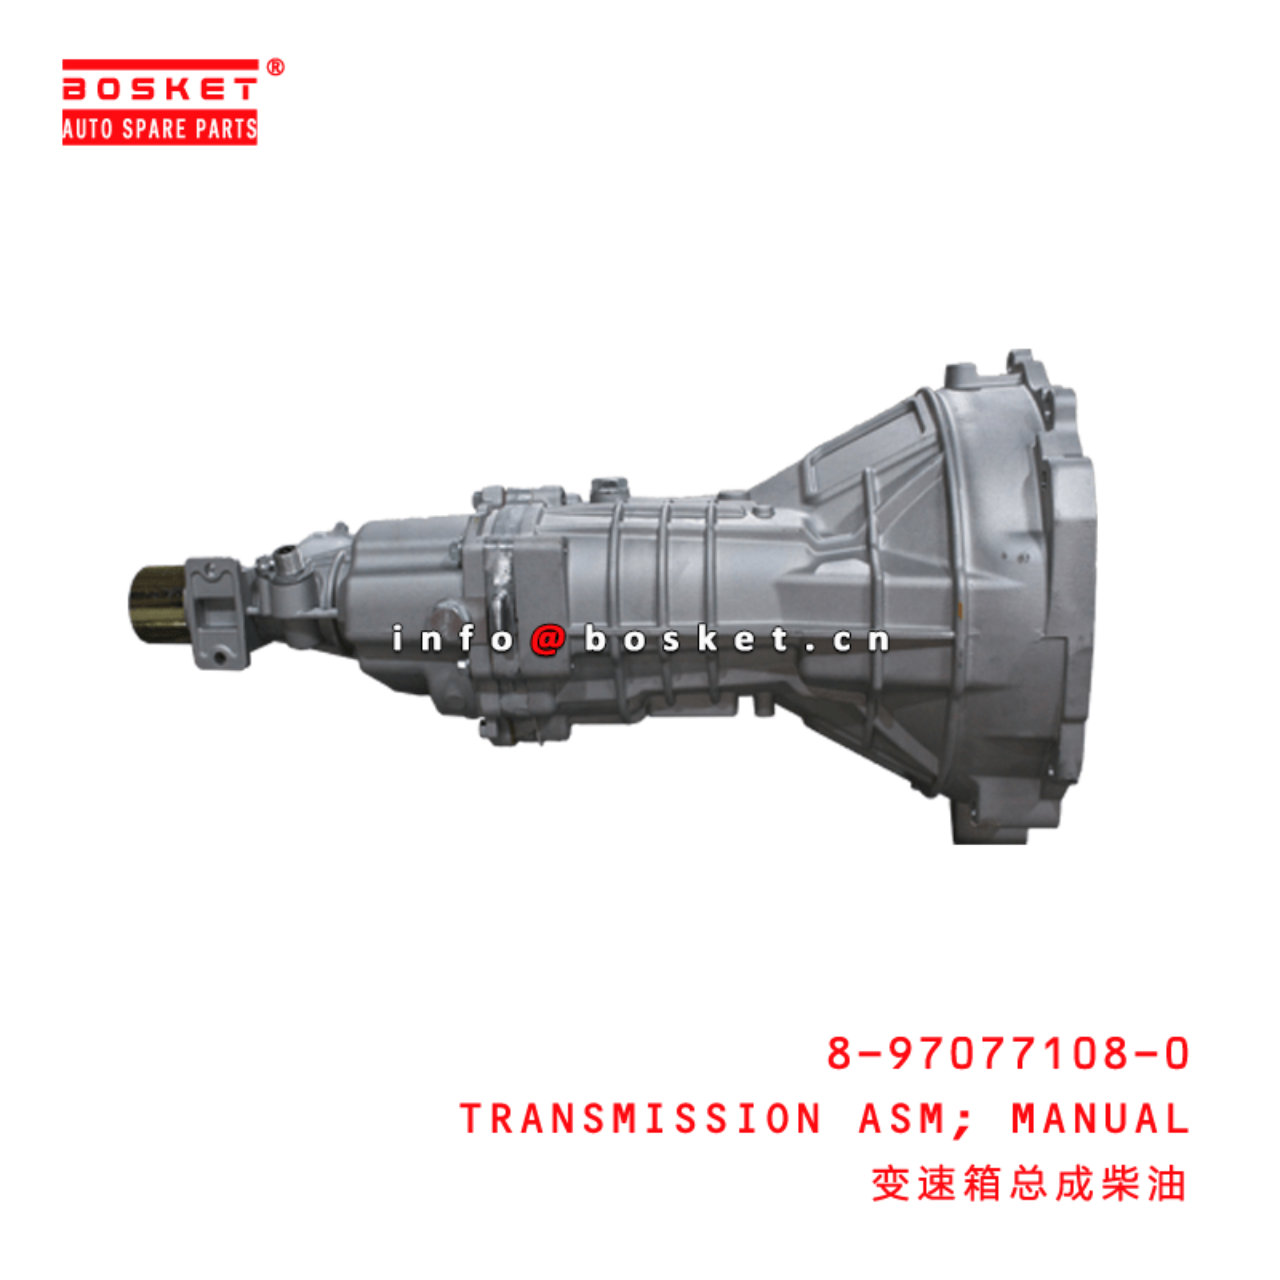 8-97077108-0 8970771080 Manual Transmission Assembly Suitable for ISUZU MSG5E TFR54 4JA1